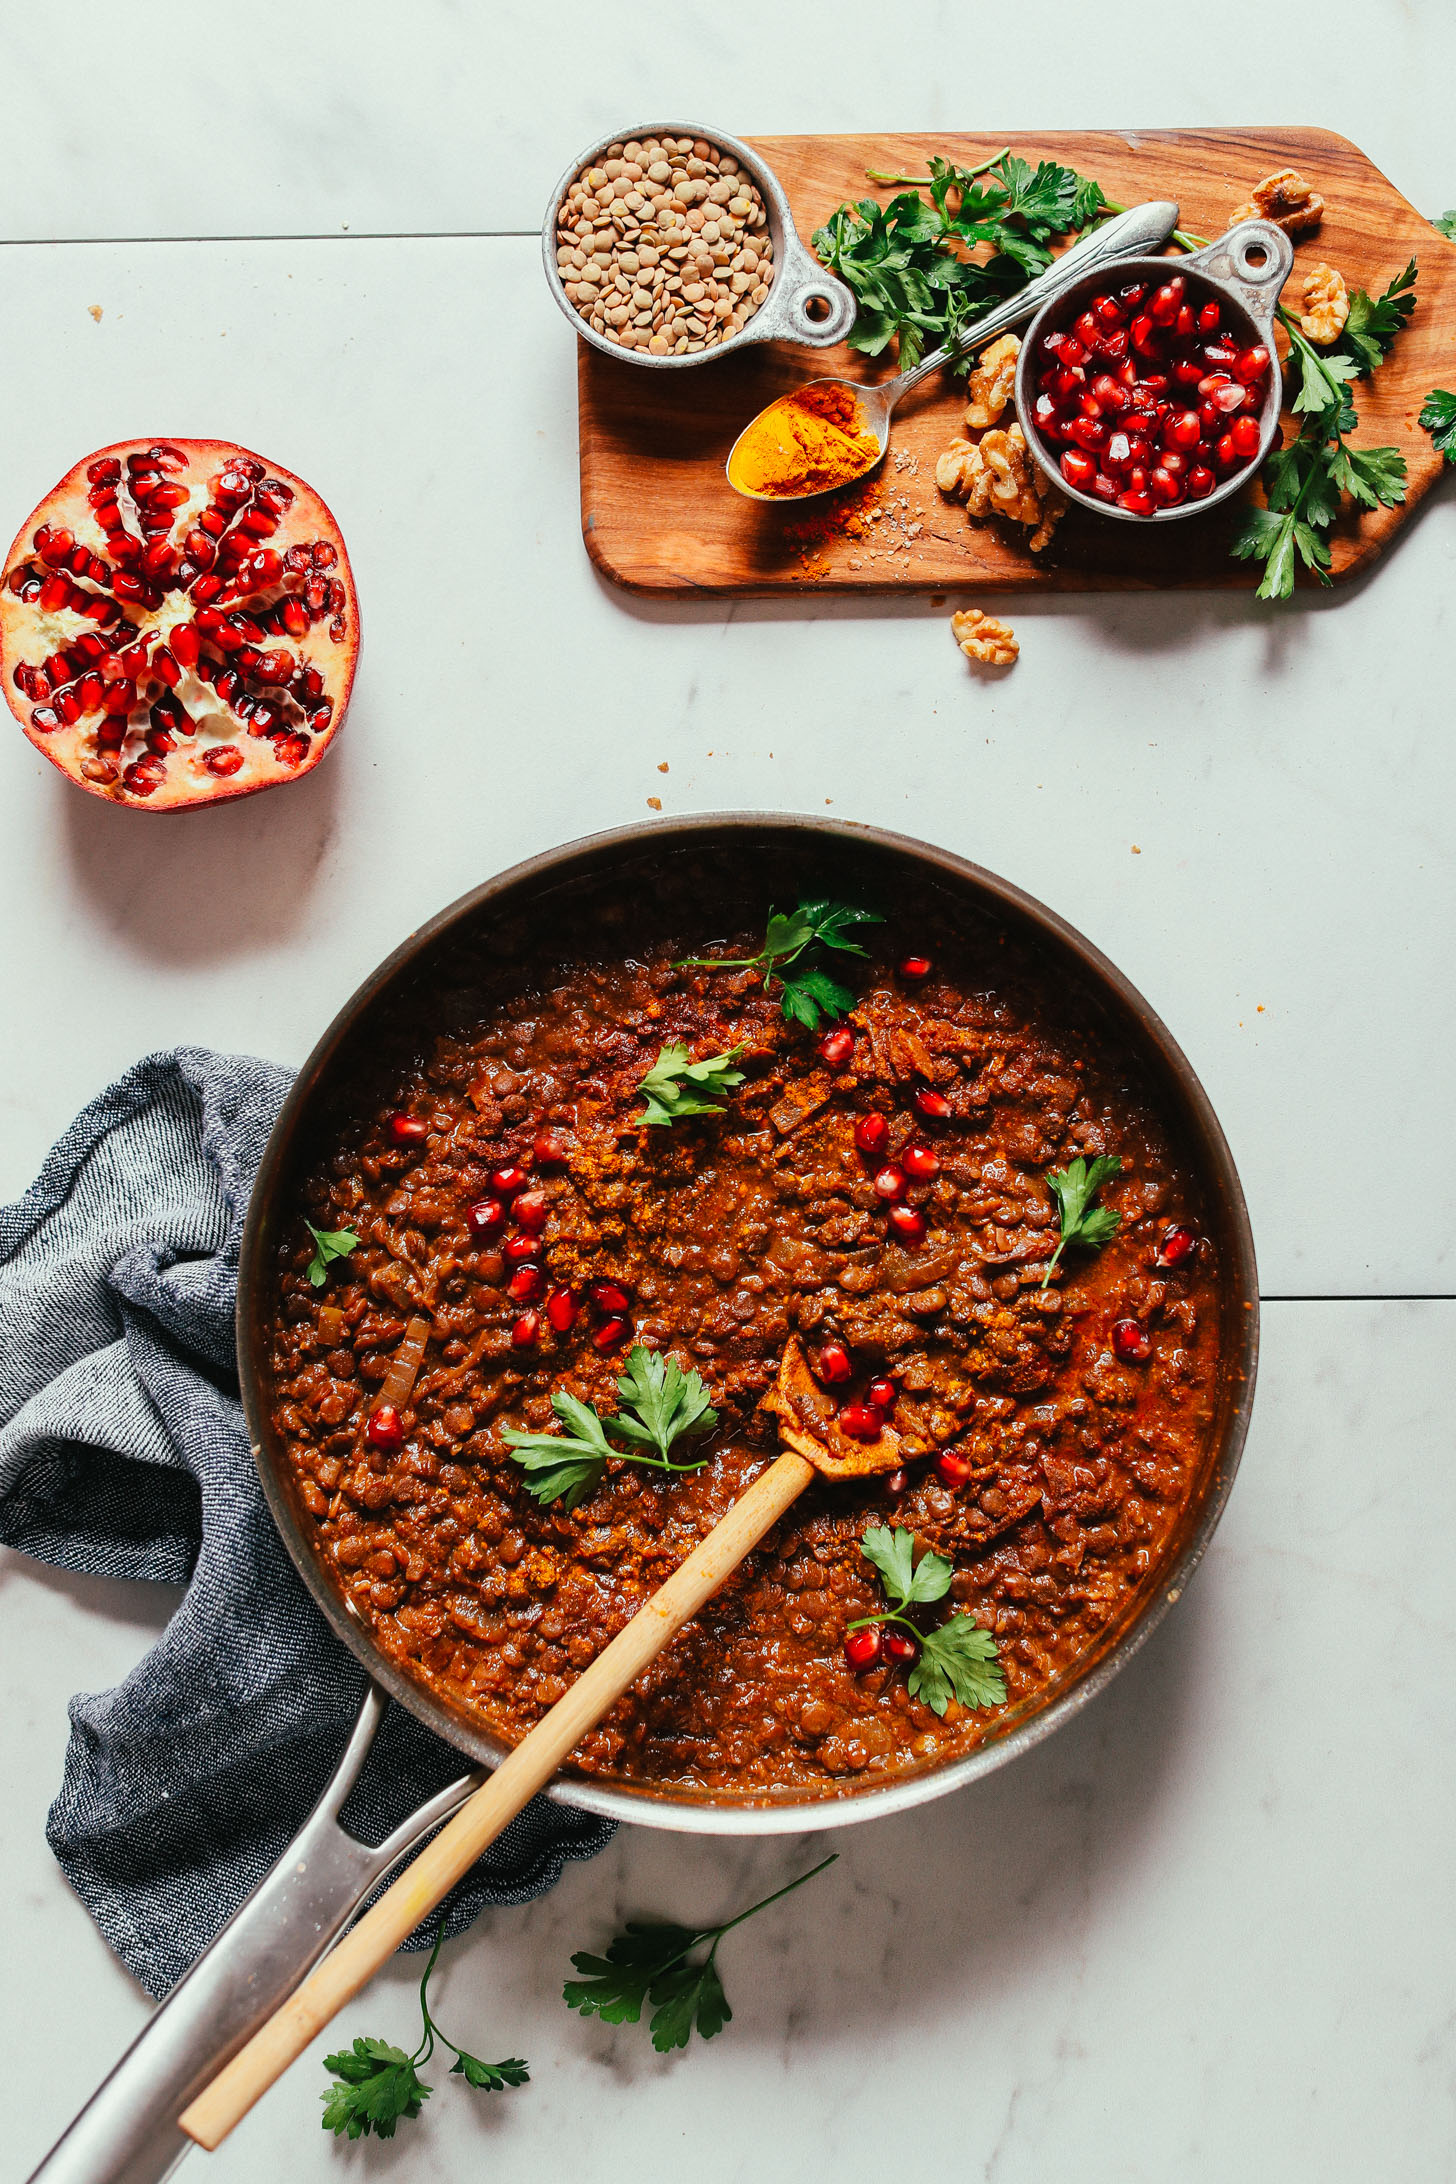 Pan of gluten-free vegan Lentil Fesenjan and a cutting board with ingredients used to make it